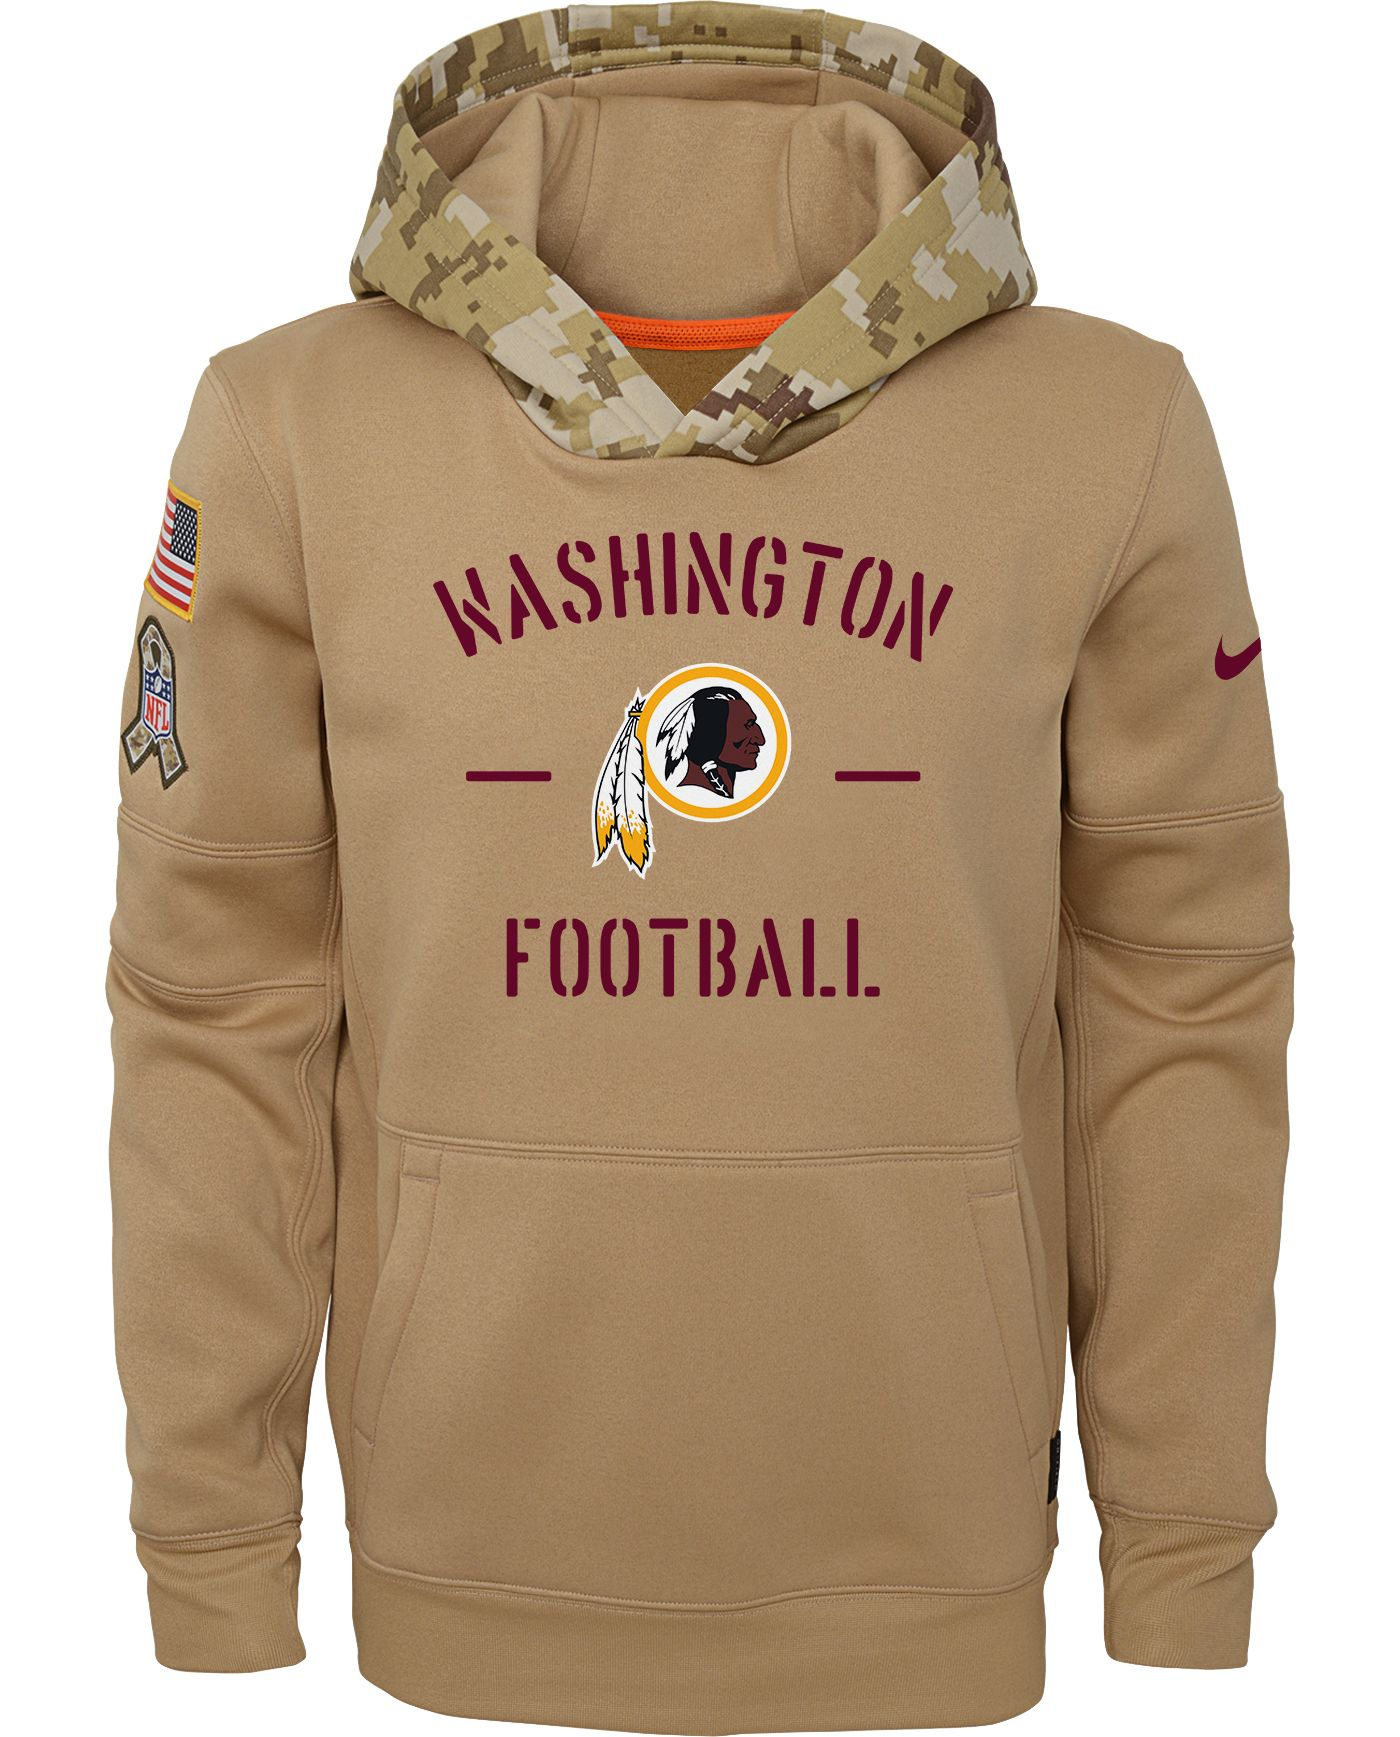 Nike Youth Salute to Service Washington Redskins Therma-FIT Beige Camo Hoodie